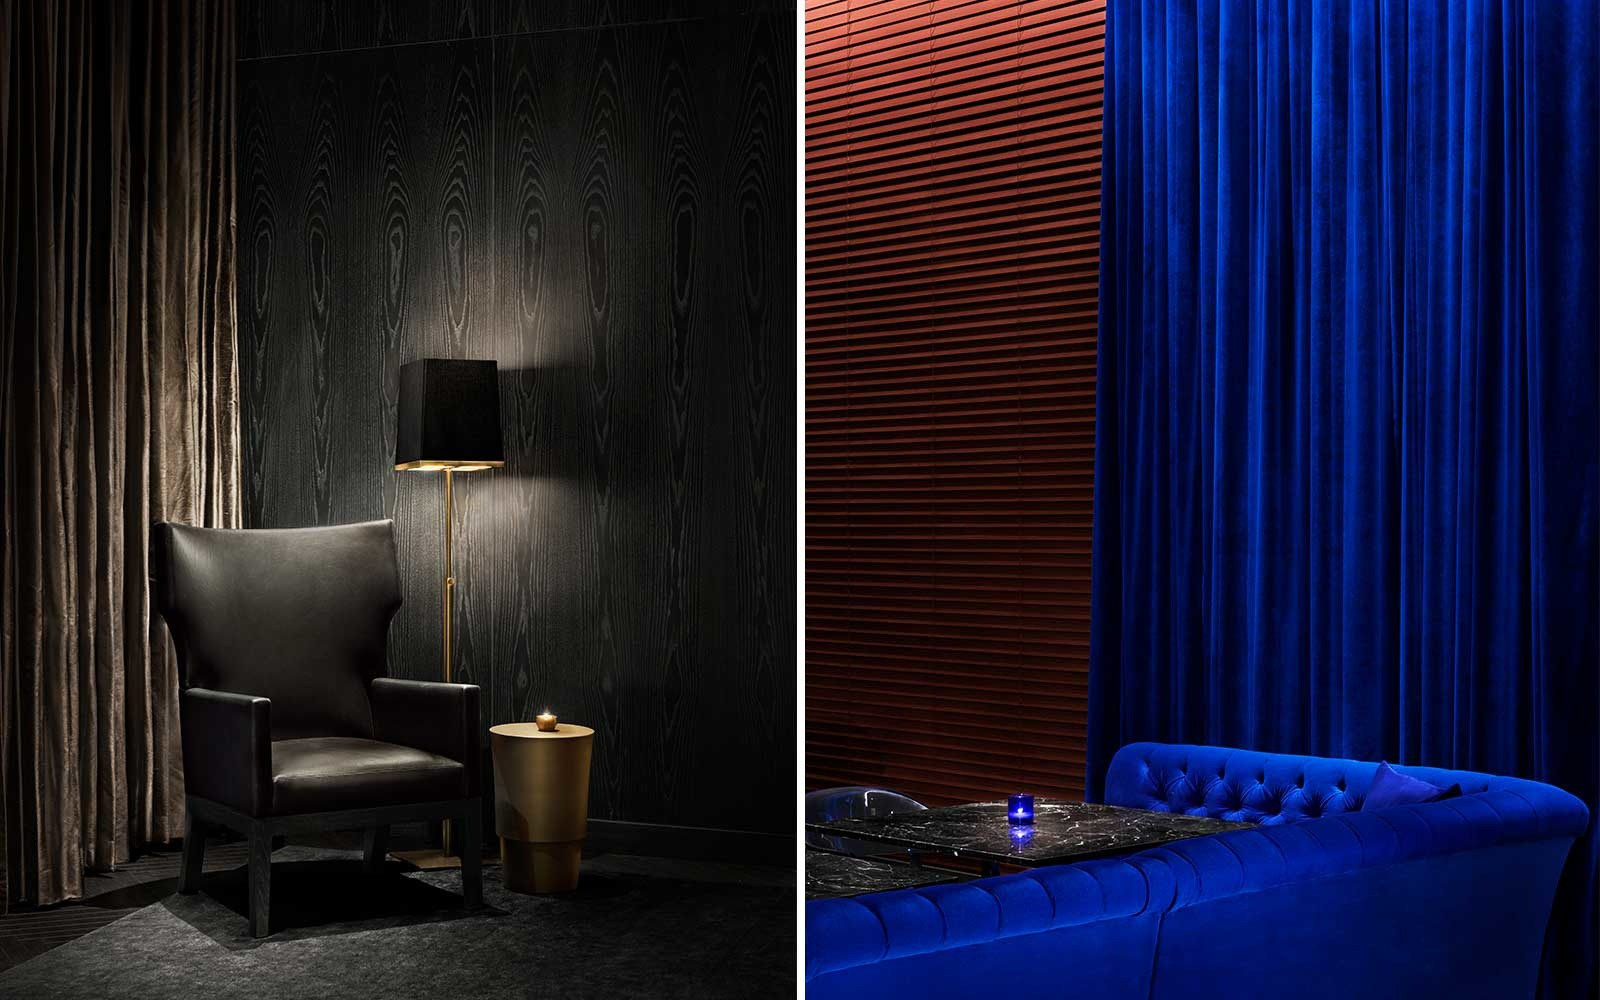 Design at the Times Square EDITION hotel